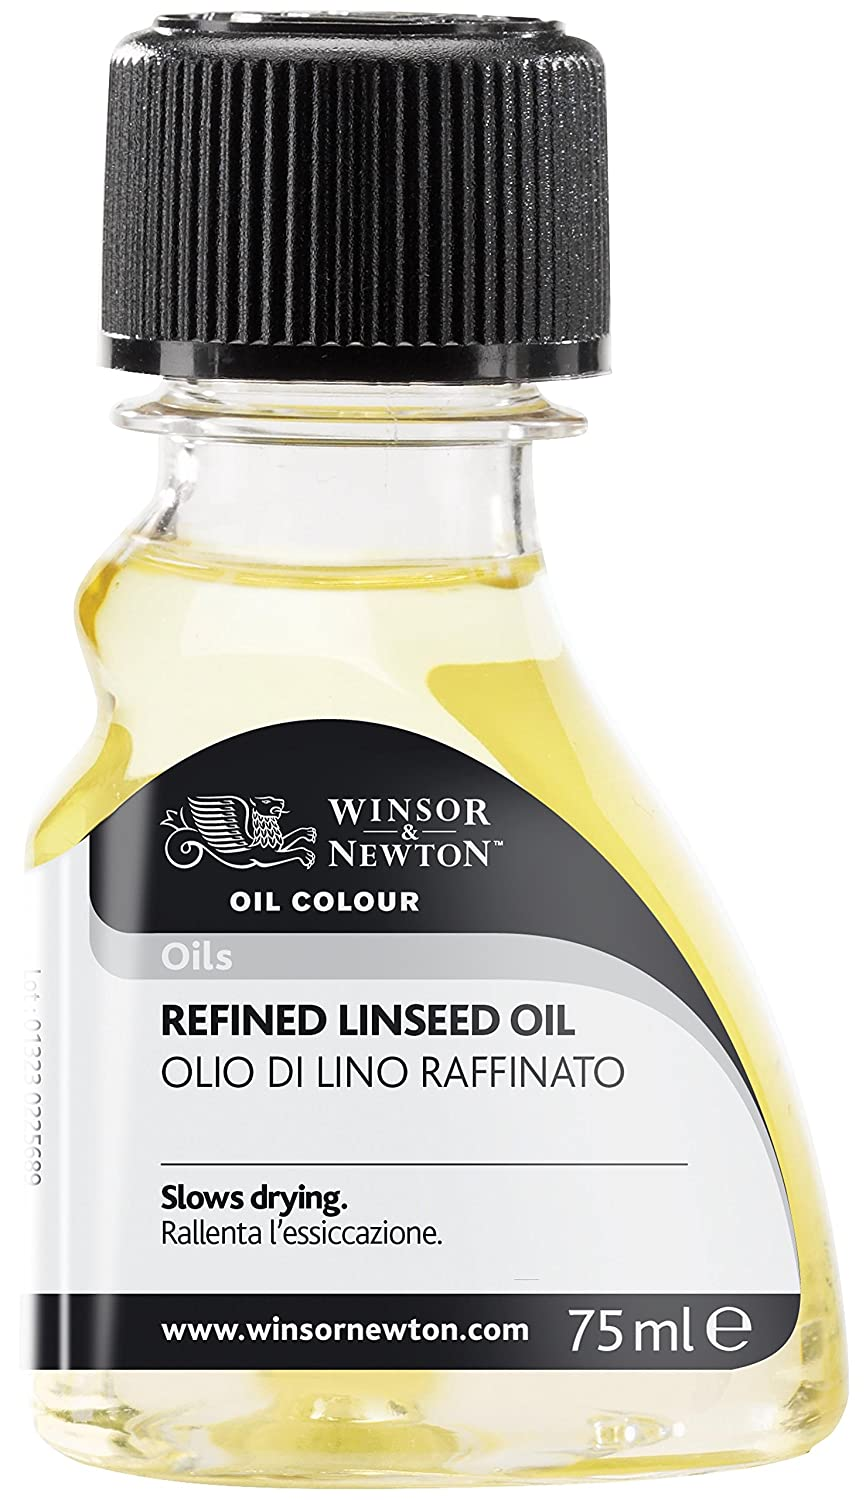 Winsor and Newton Oil Colour Refined Linseed Oil 75ml (Bttl) Colart 3021748